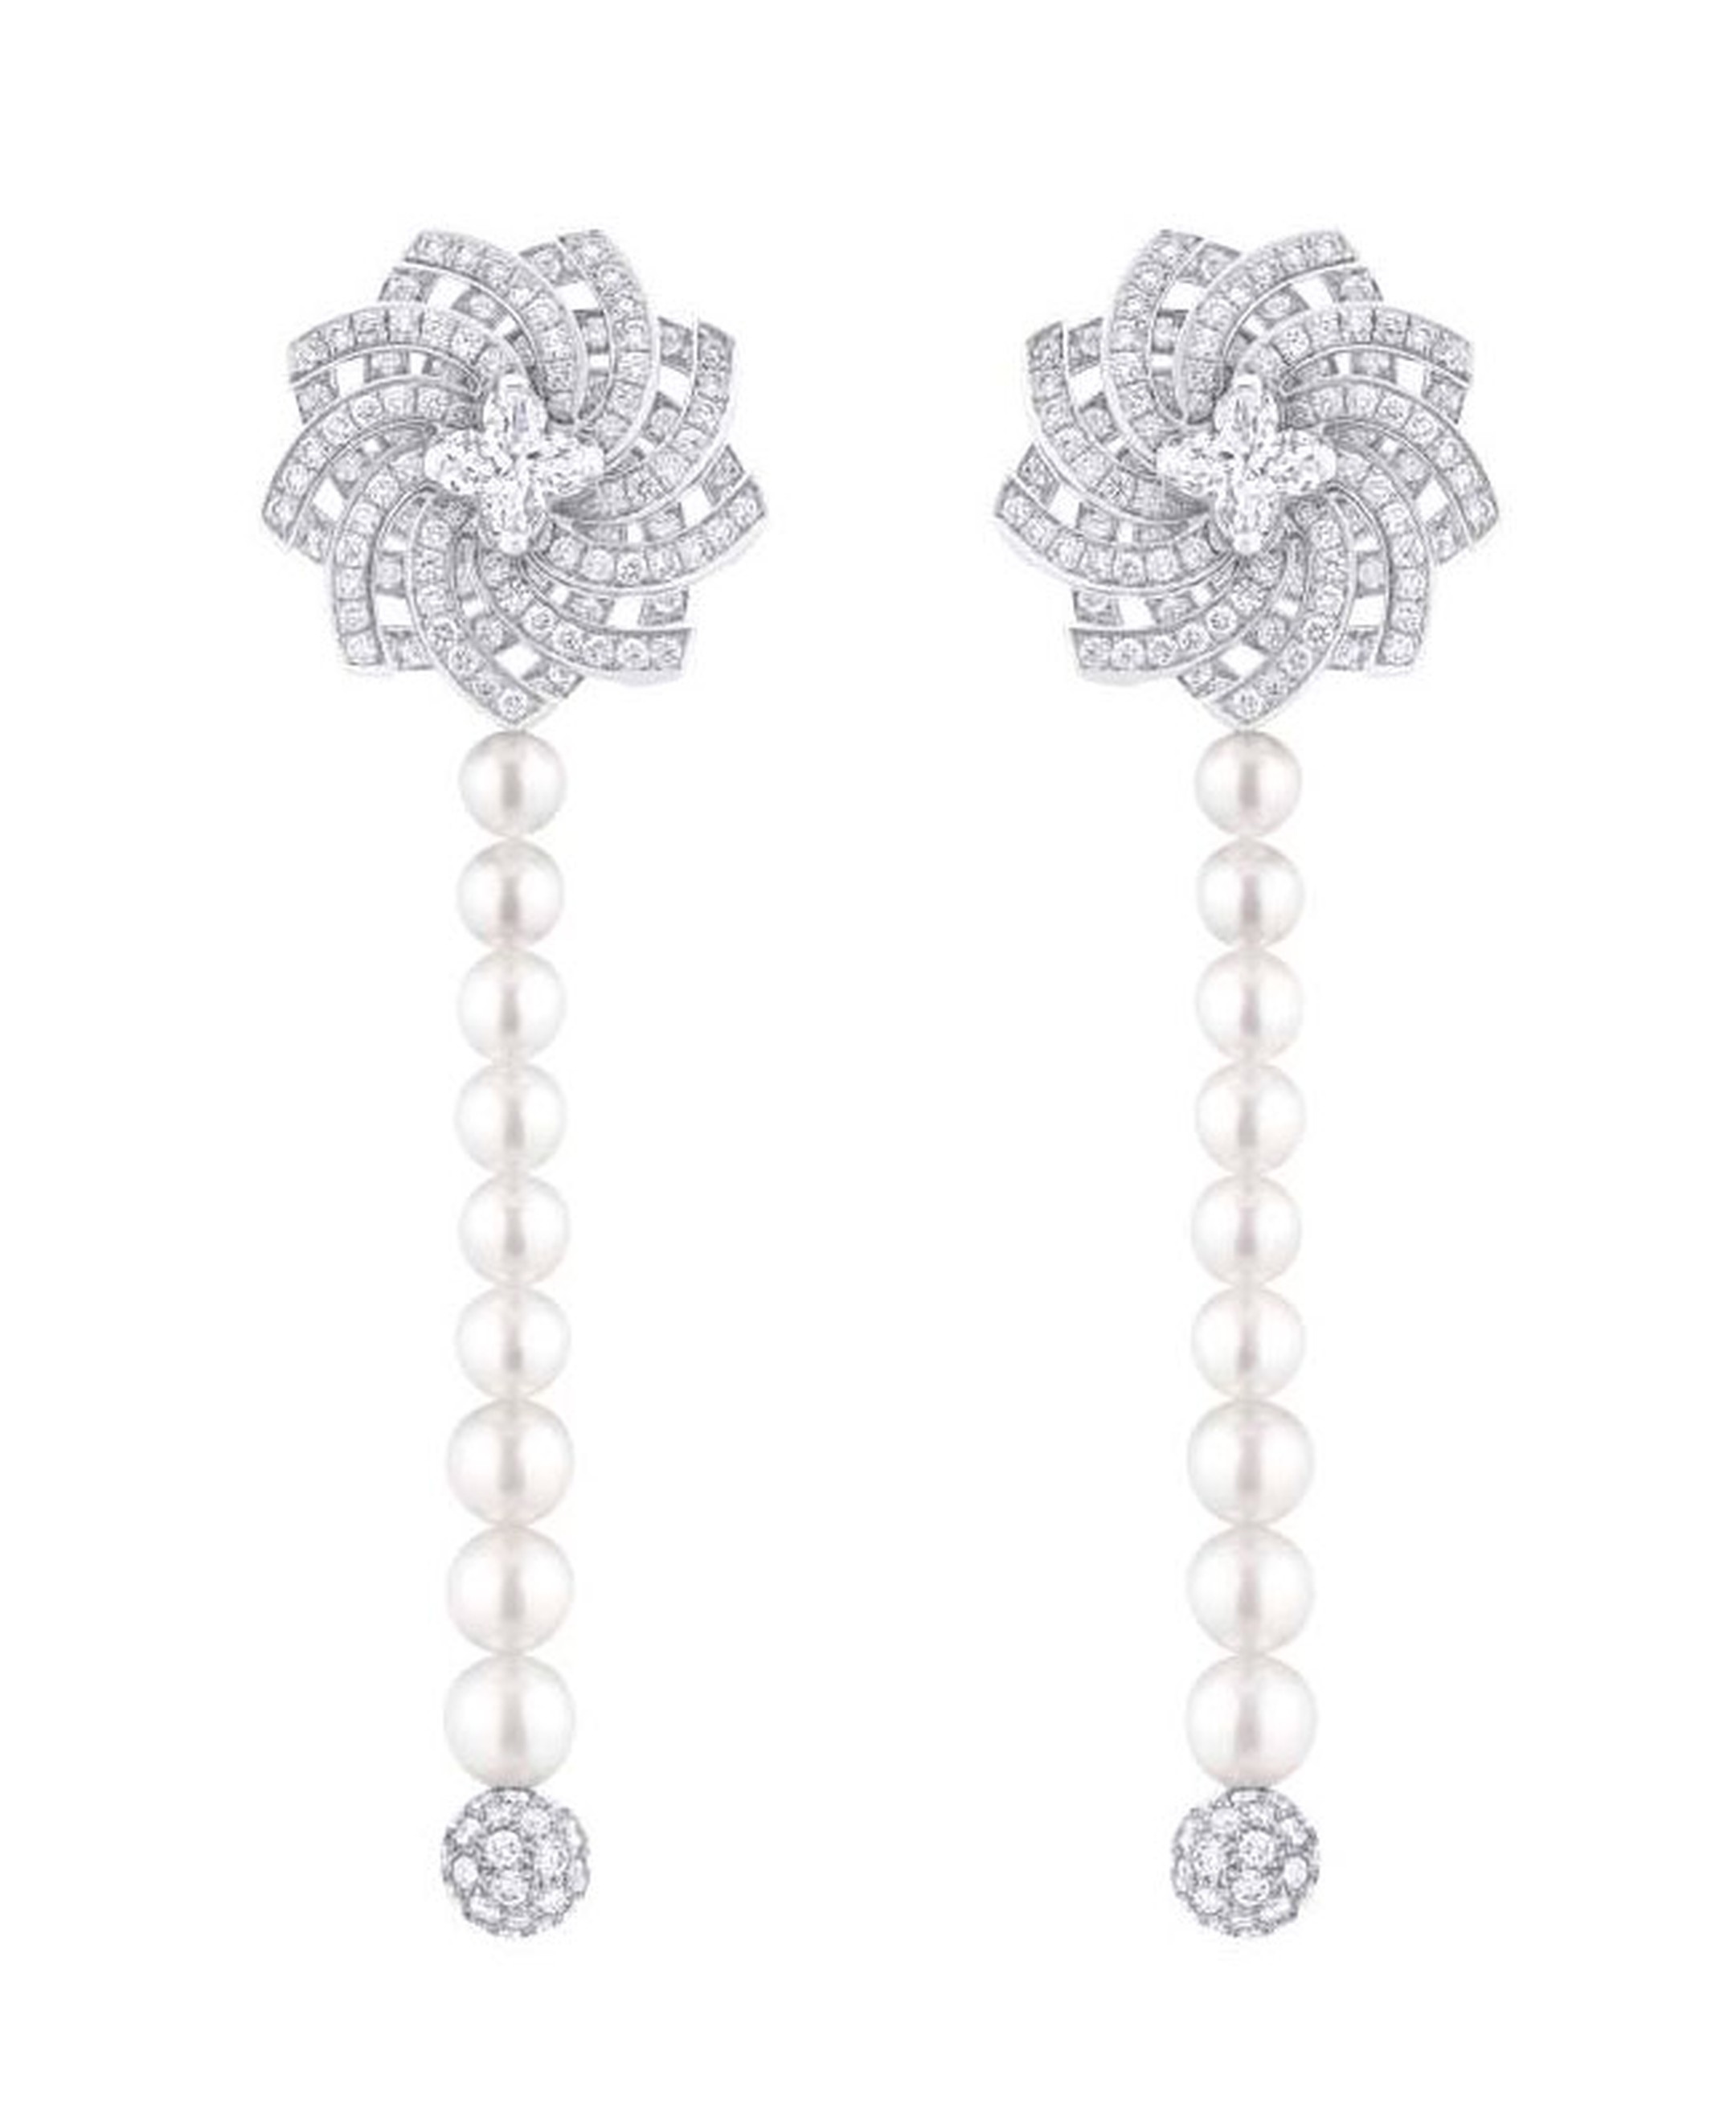 Louis-Vuitton_Haute-Joaillerie_VDLT_Monogram-Infini-Diamants---3.jpg